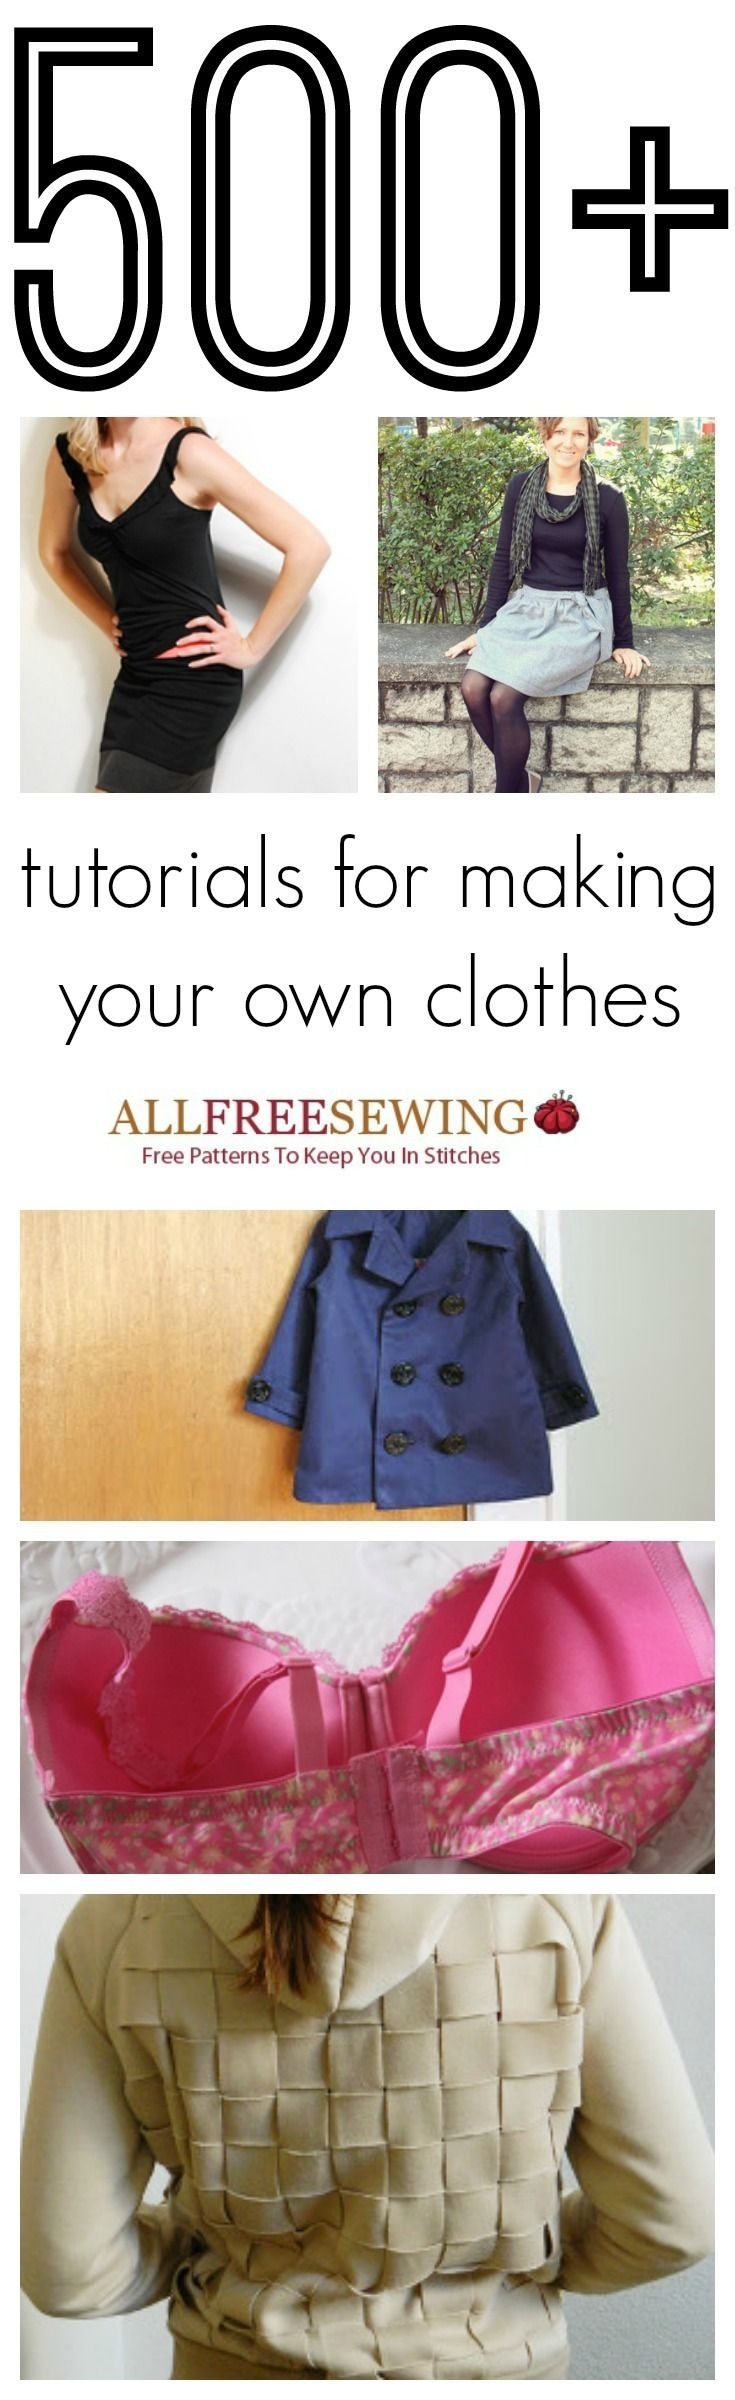 1cad457fd48ec How to Make Clothes: 500+ Tutorials for Making Your Own Clothes   DIY  fashion doesn't get much better than these sewing tutorials!